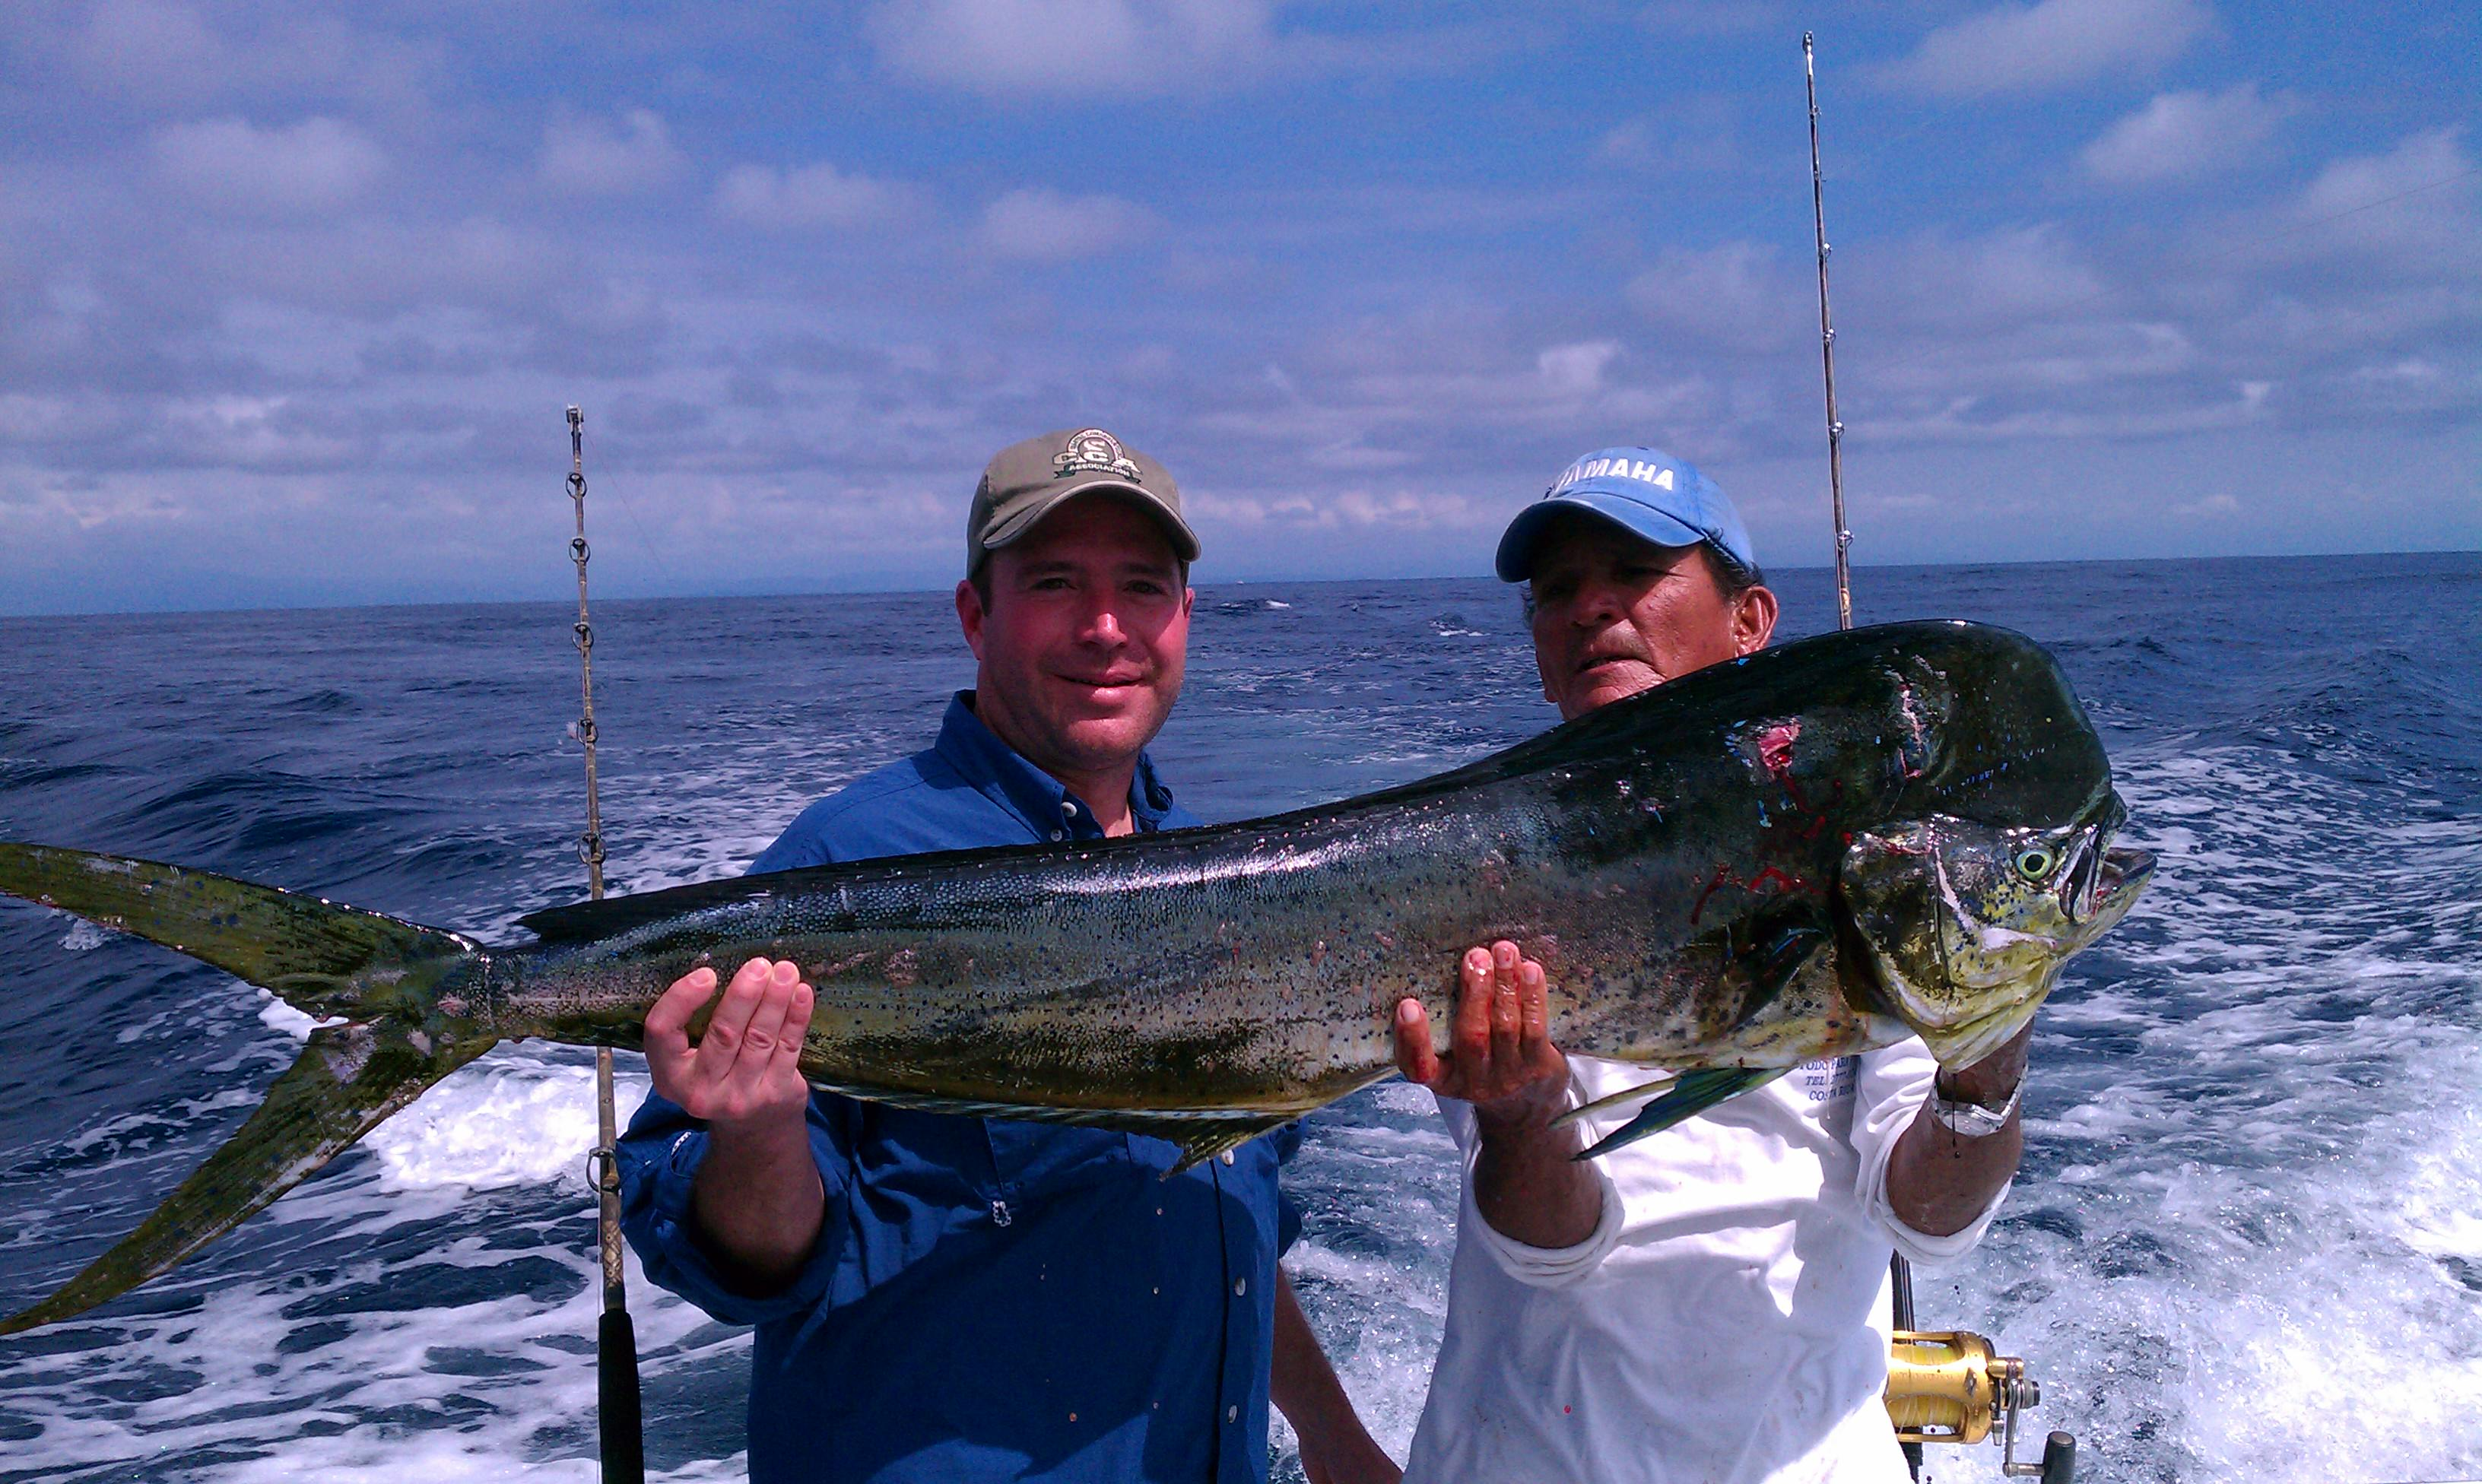 Costa rica sport fishing tour package costa rica for Costa rica fishing packages